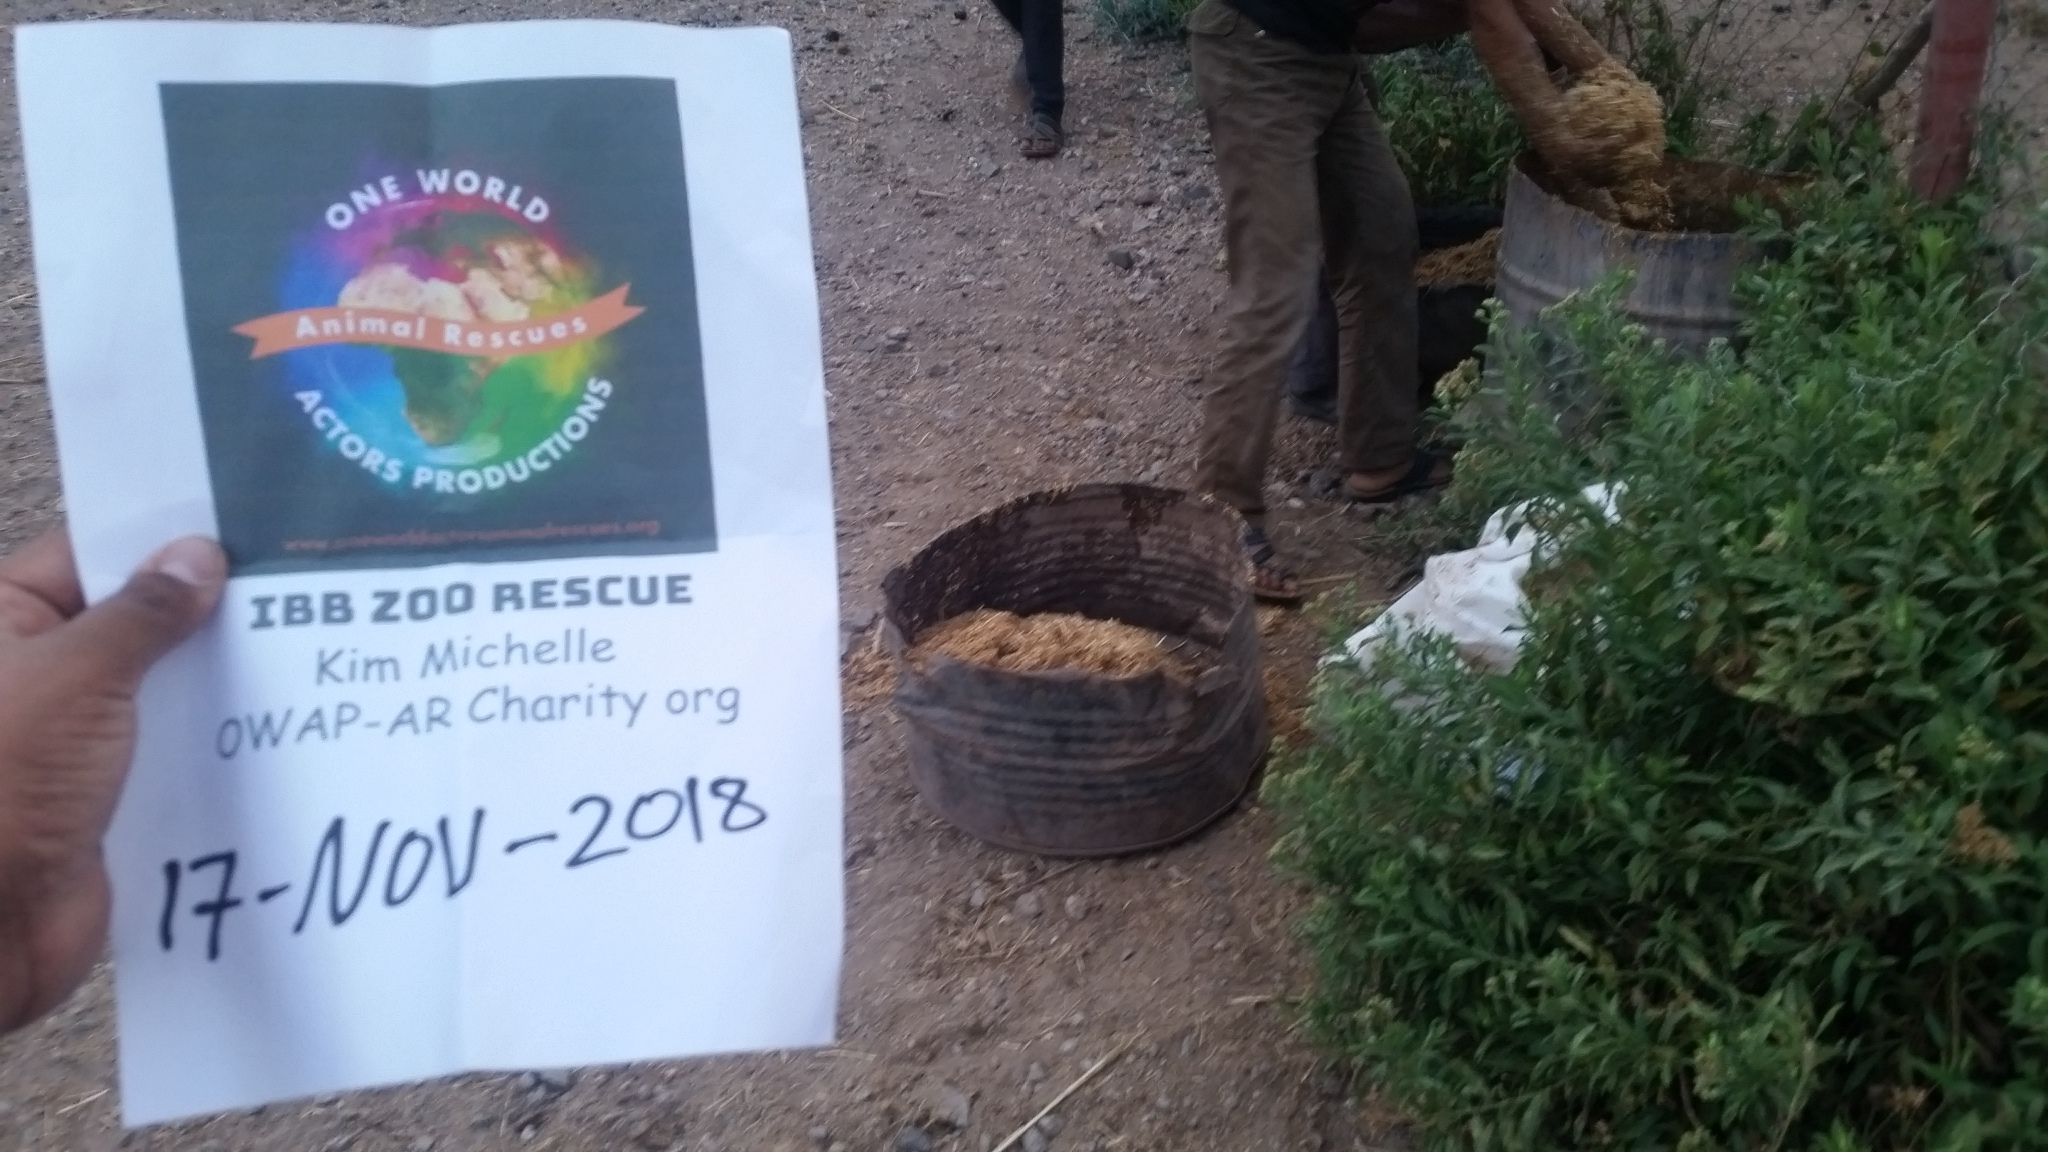 ibb zoo feeding special feed preparation 17 NOV 2018 from OWAP-AR is that Youssef sign.jpg